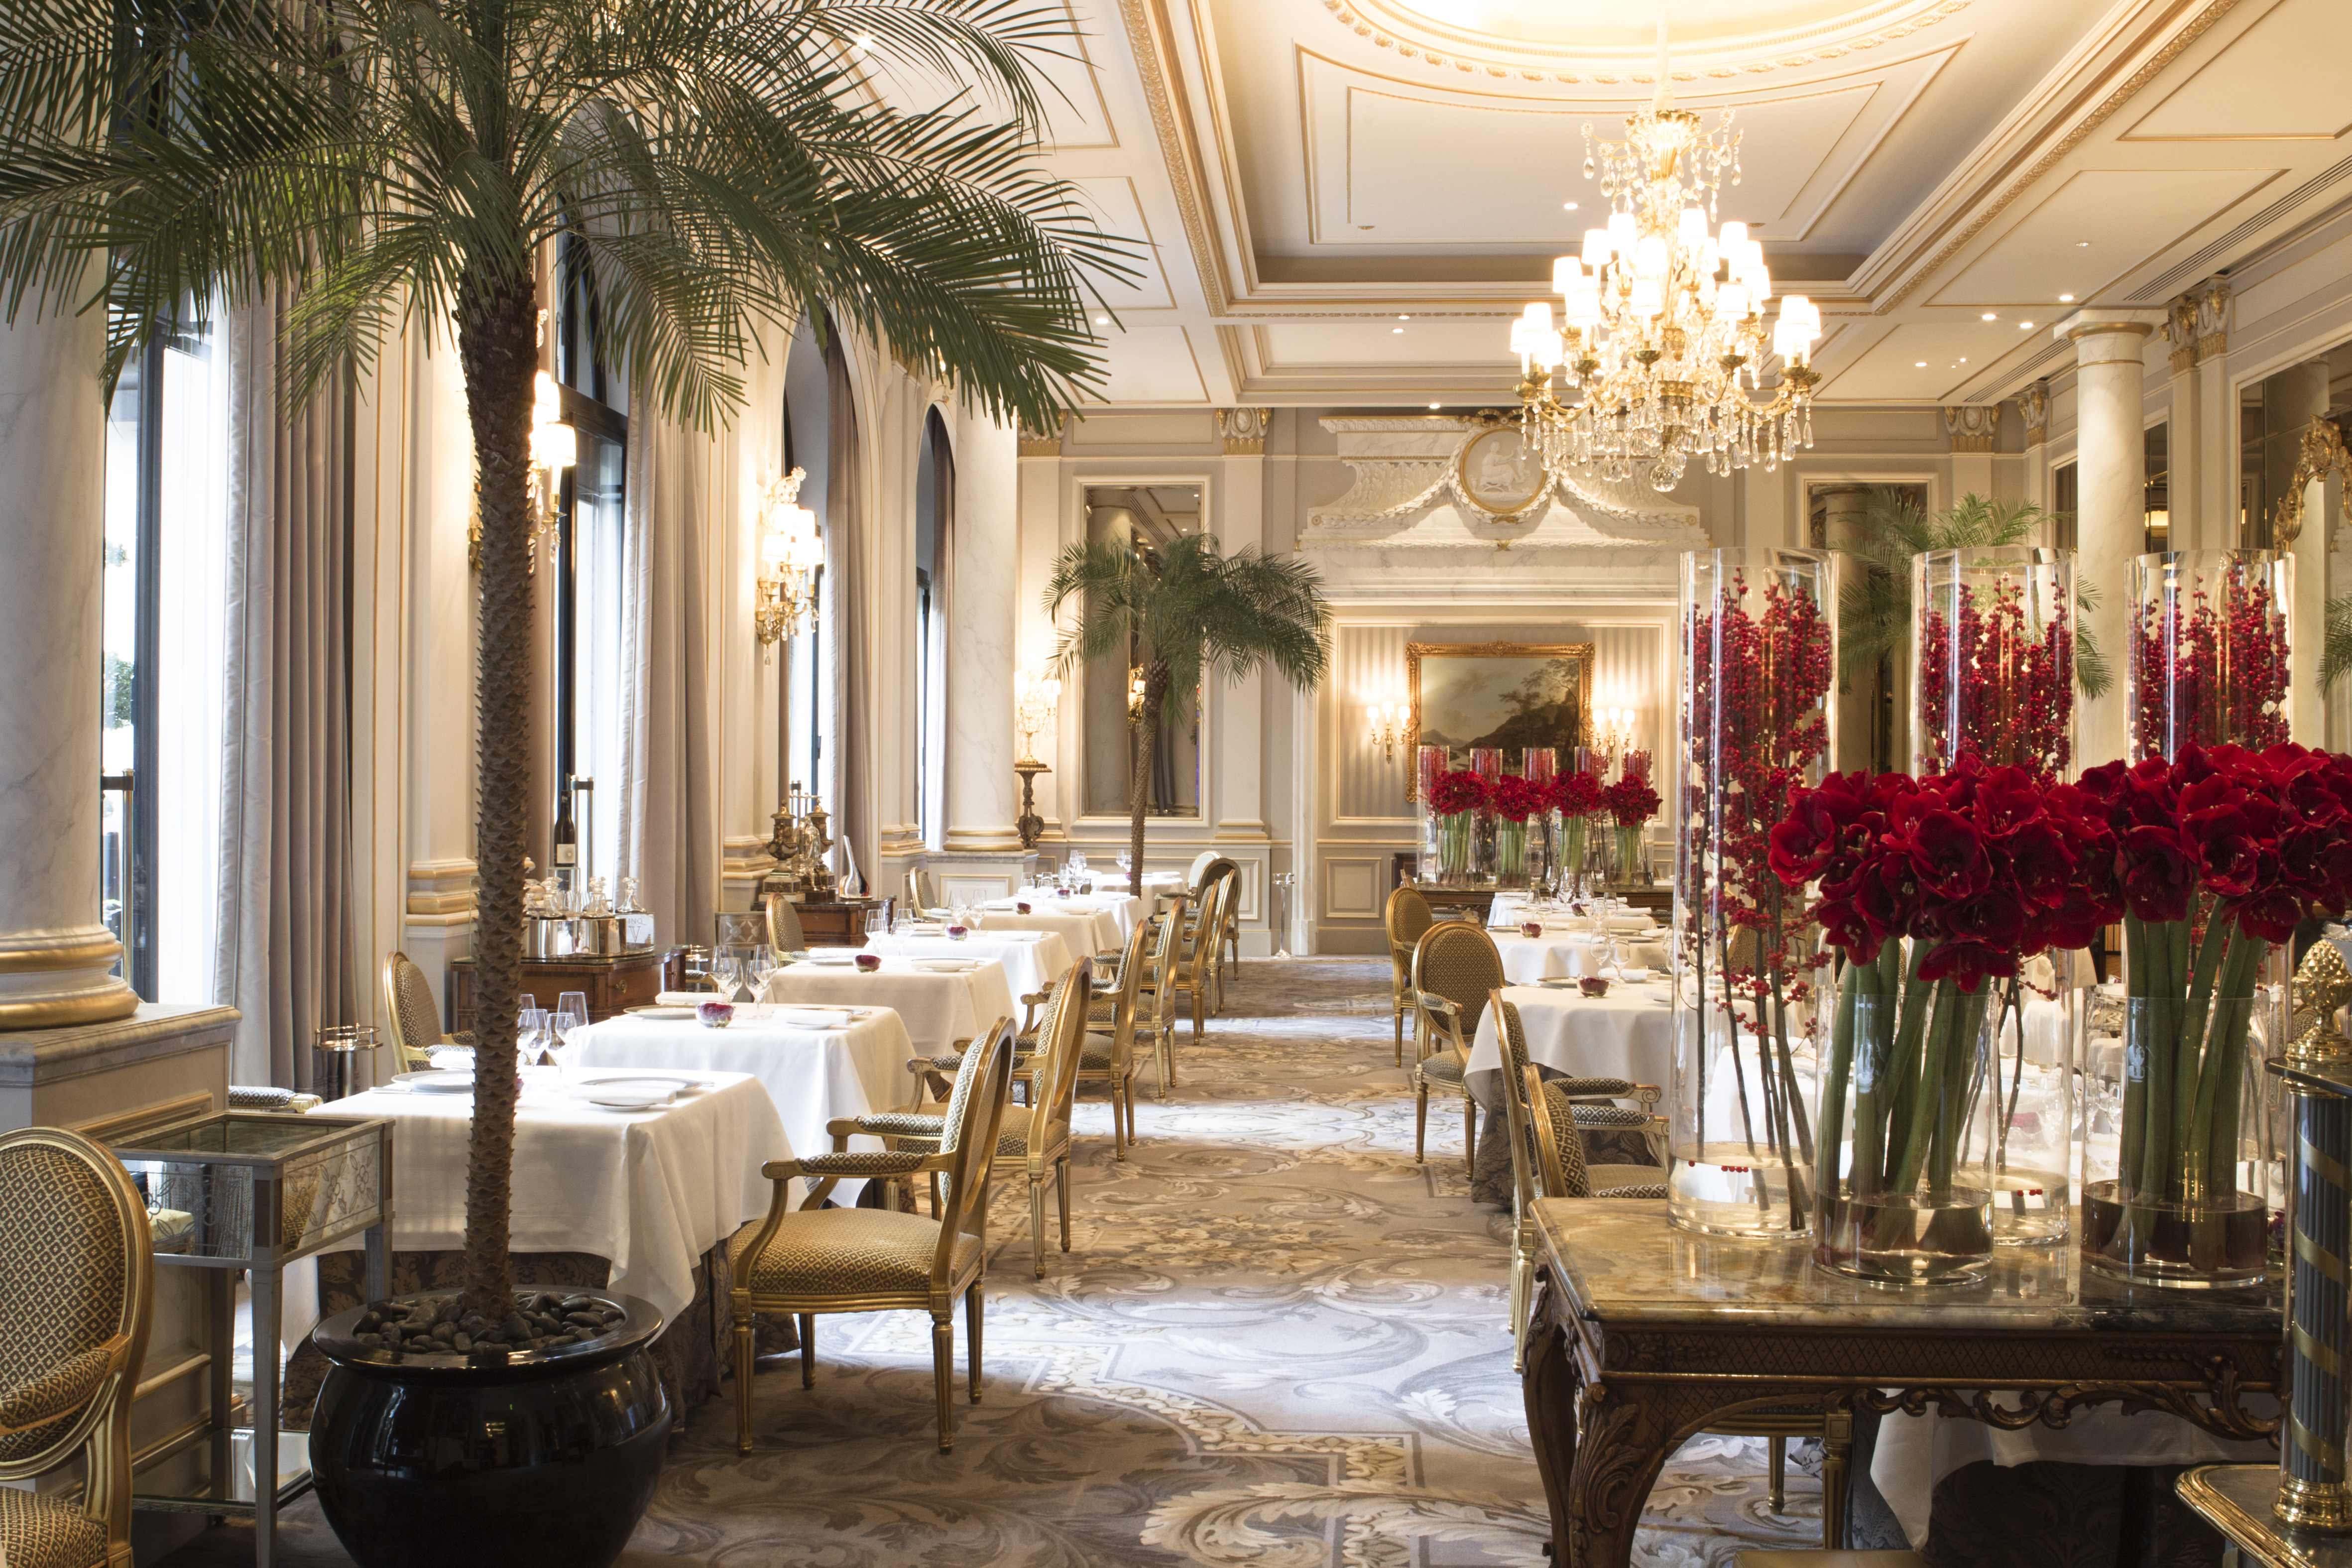 Restaurant Le Cinq-Paris 8th arrondissement